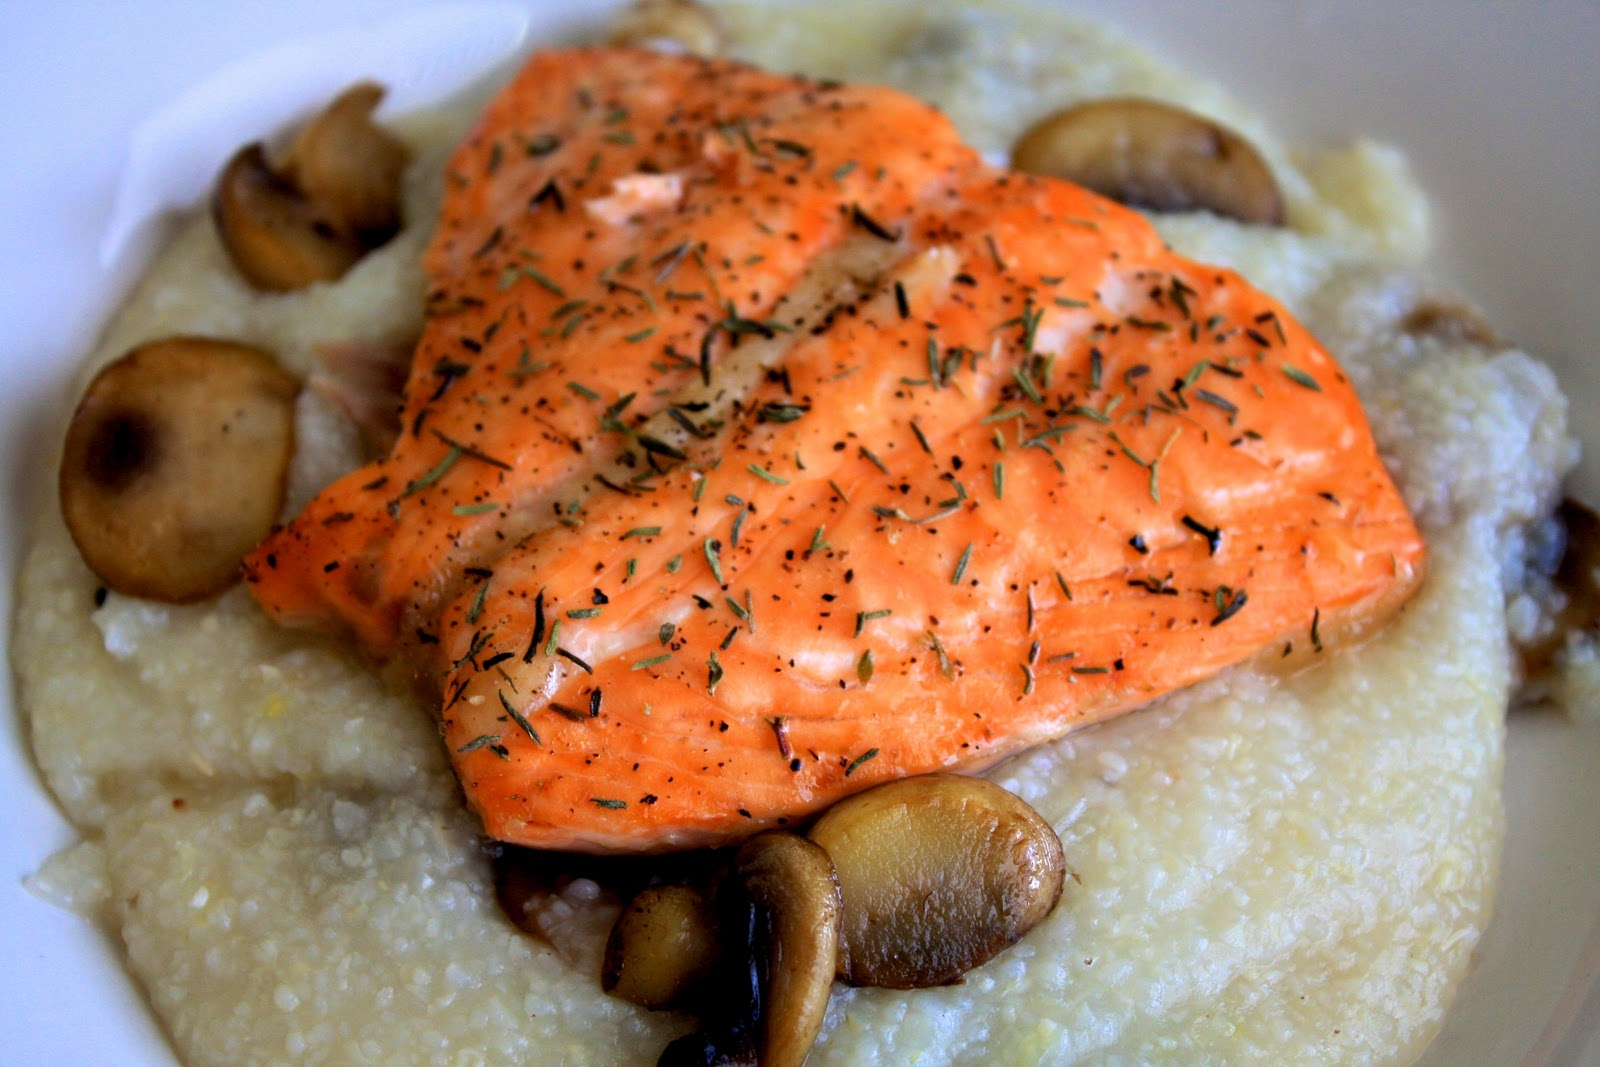 Broiled Salmon over Parmesan Cheese Grits | Our Family Eats